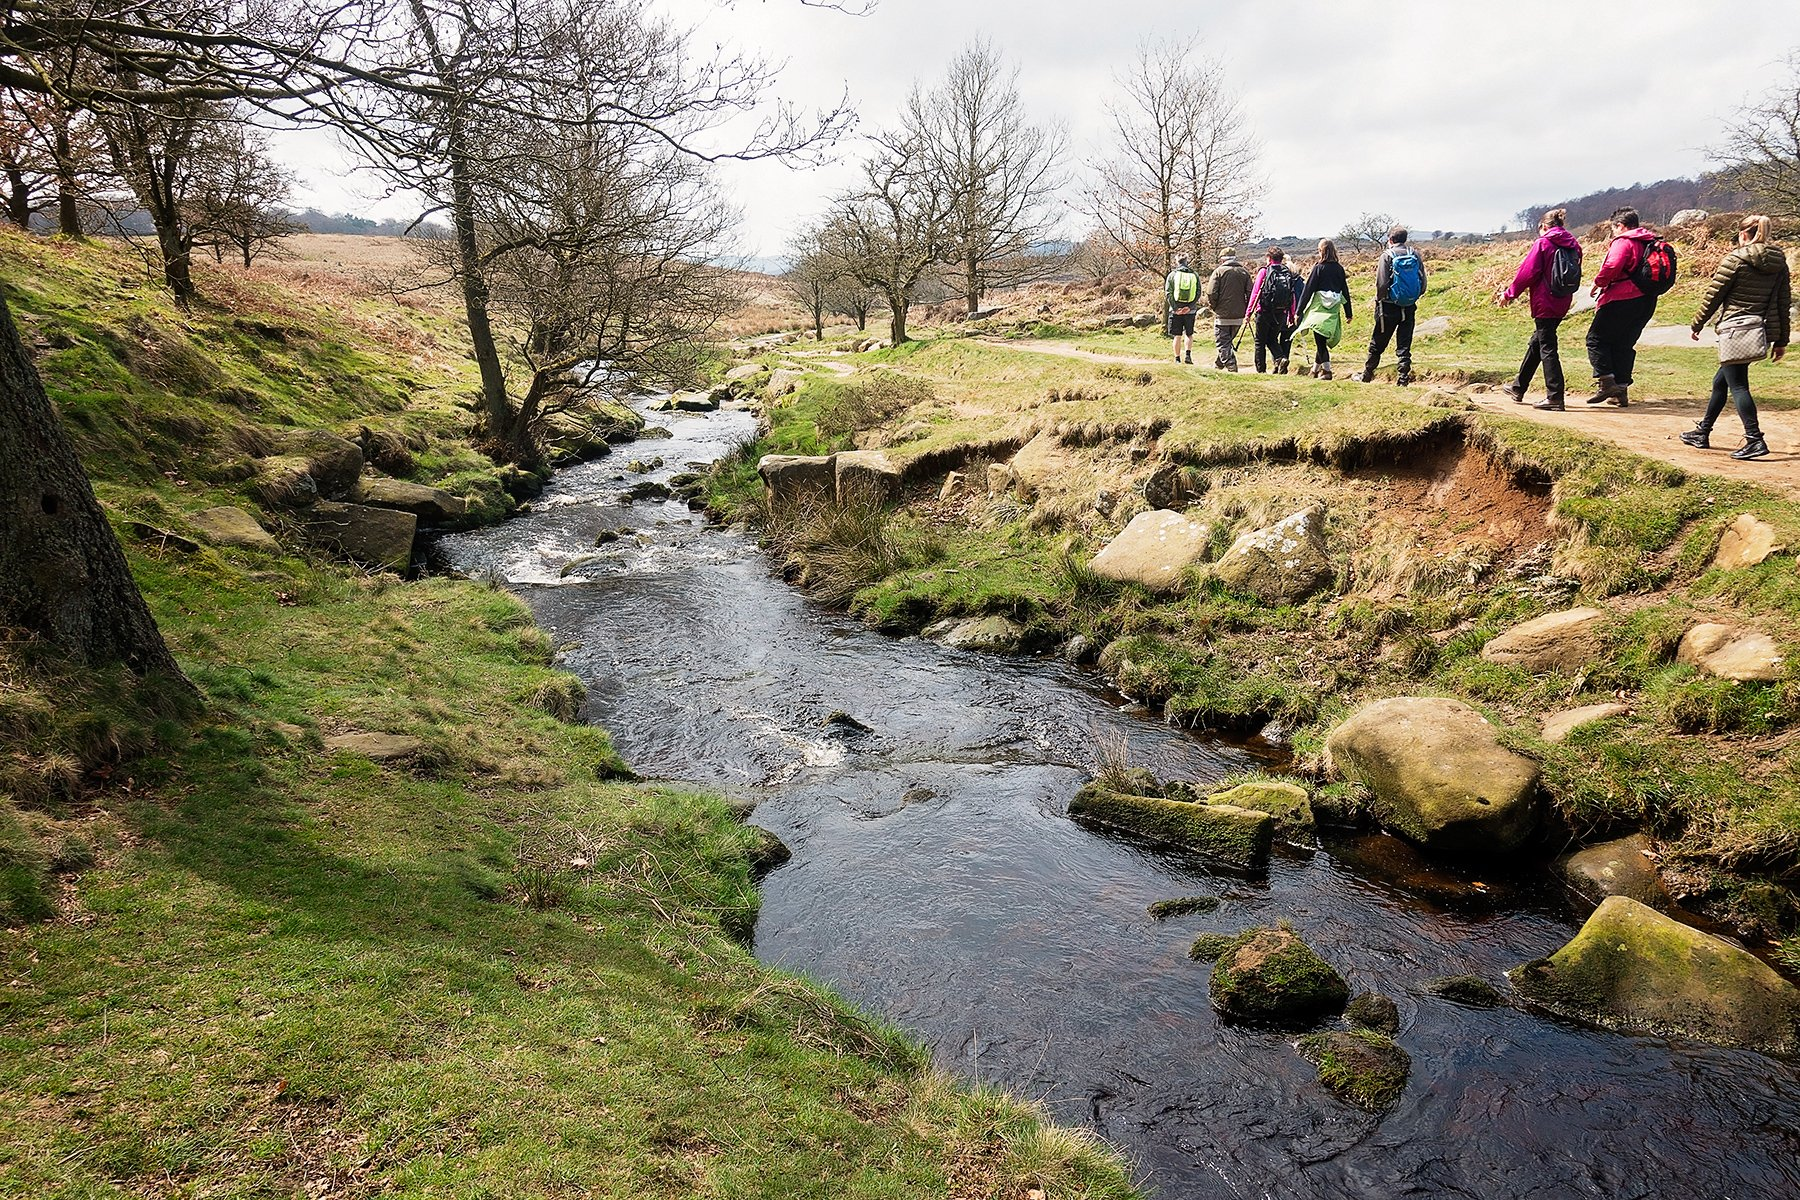 Longshaw guided walk to Burbage Edge in the Peak District